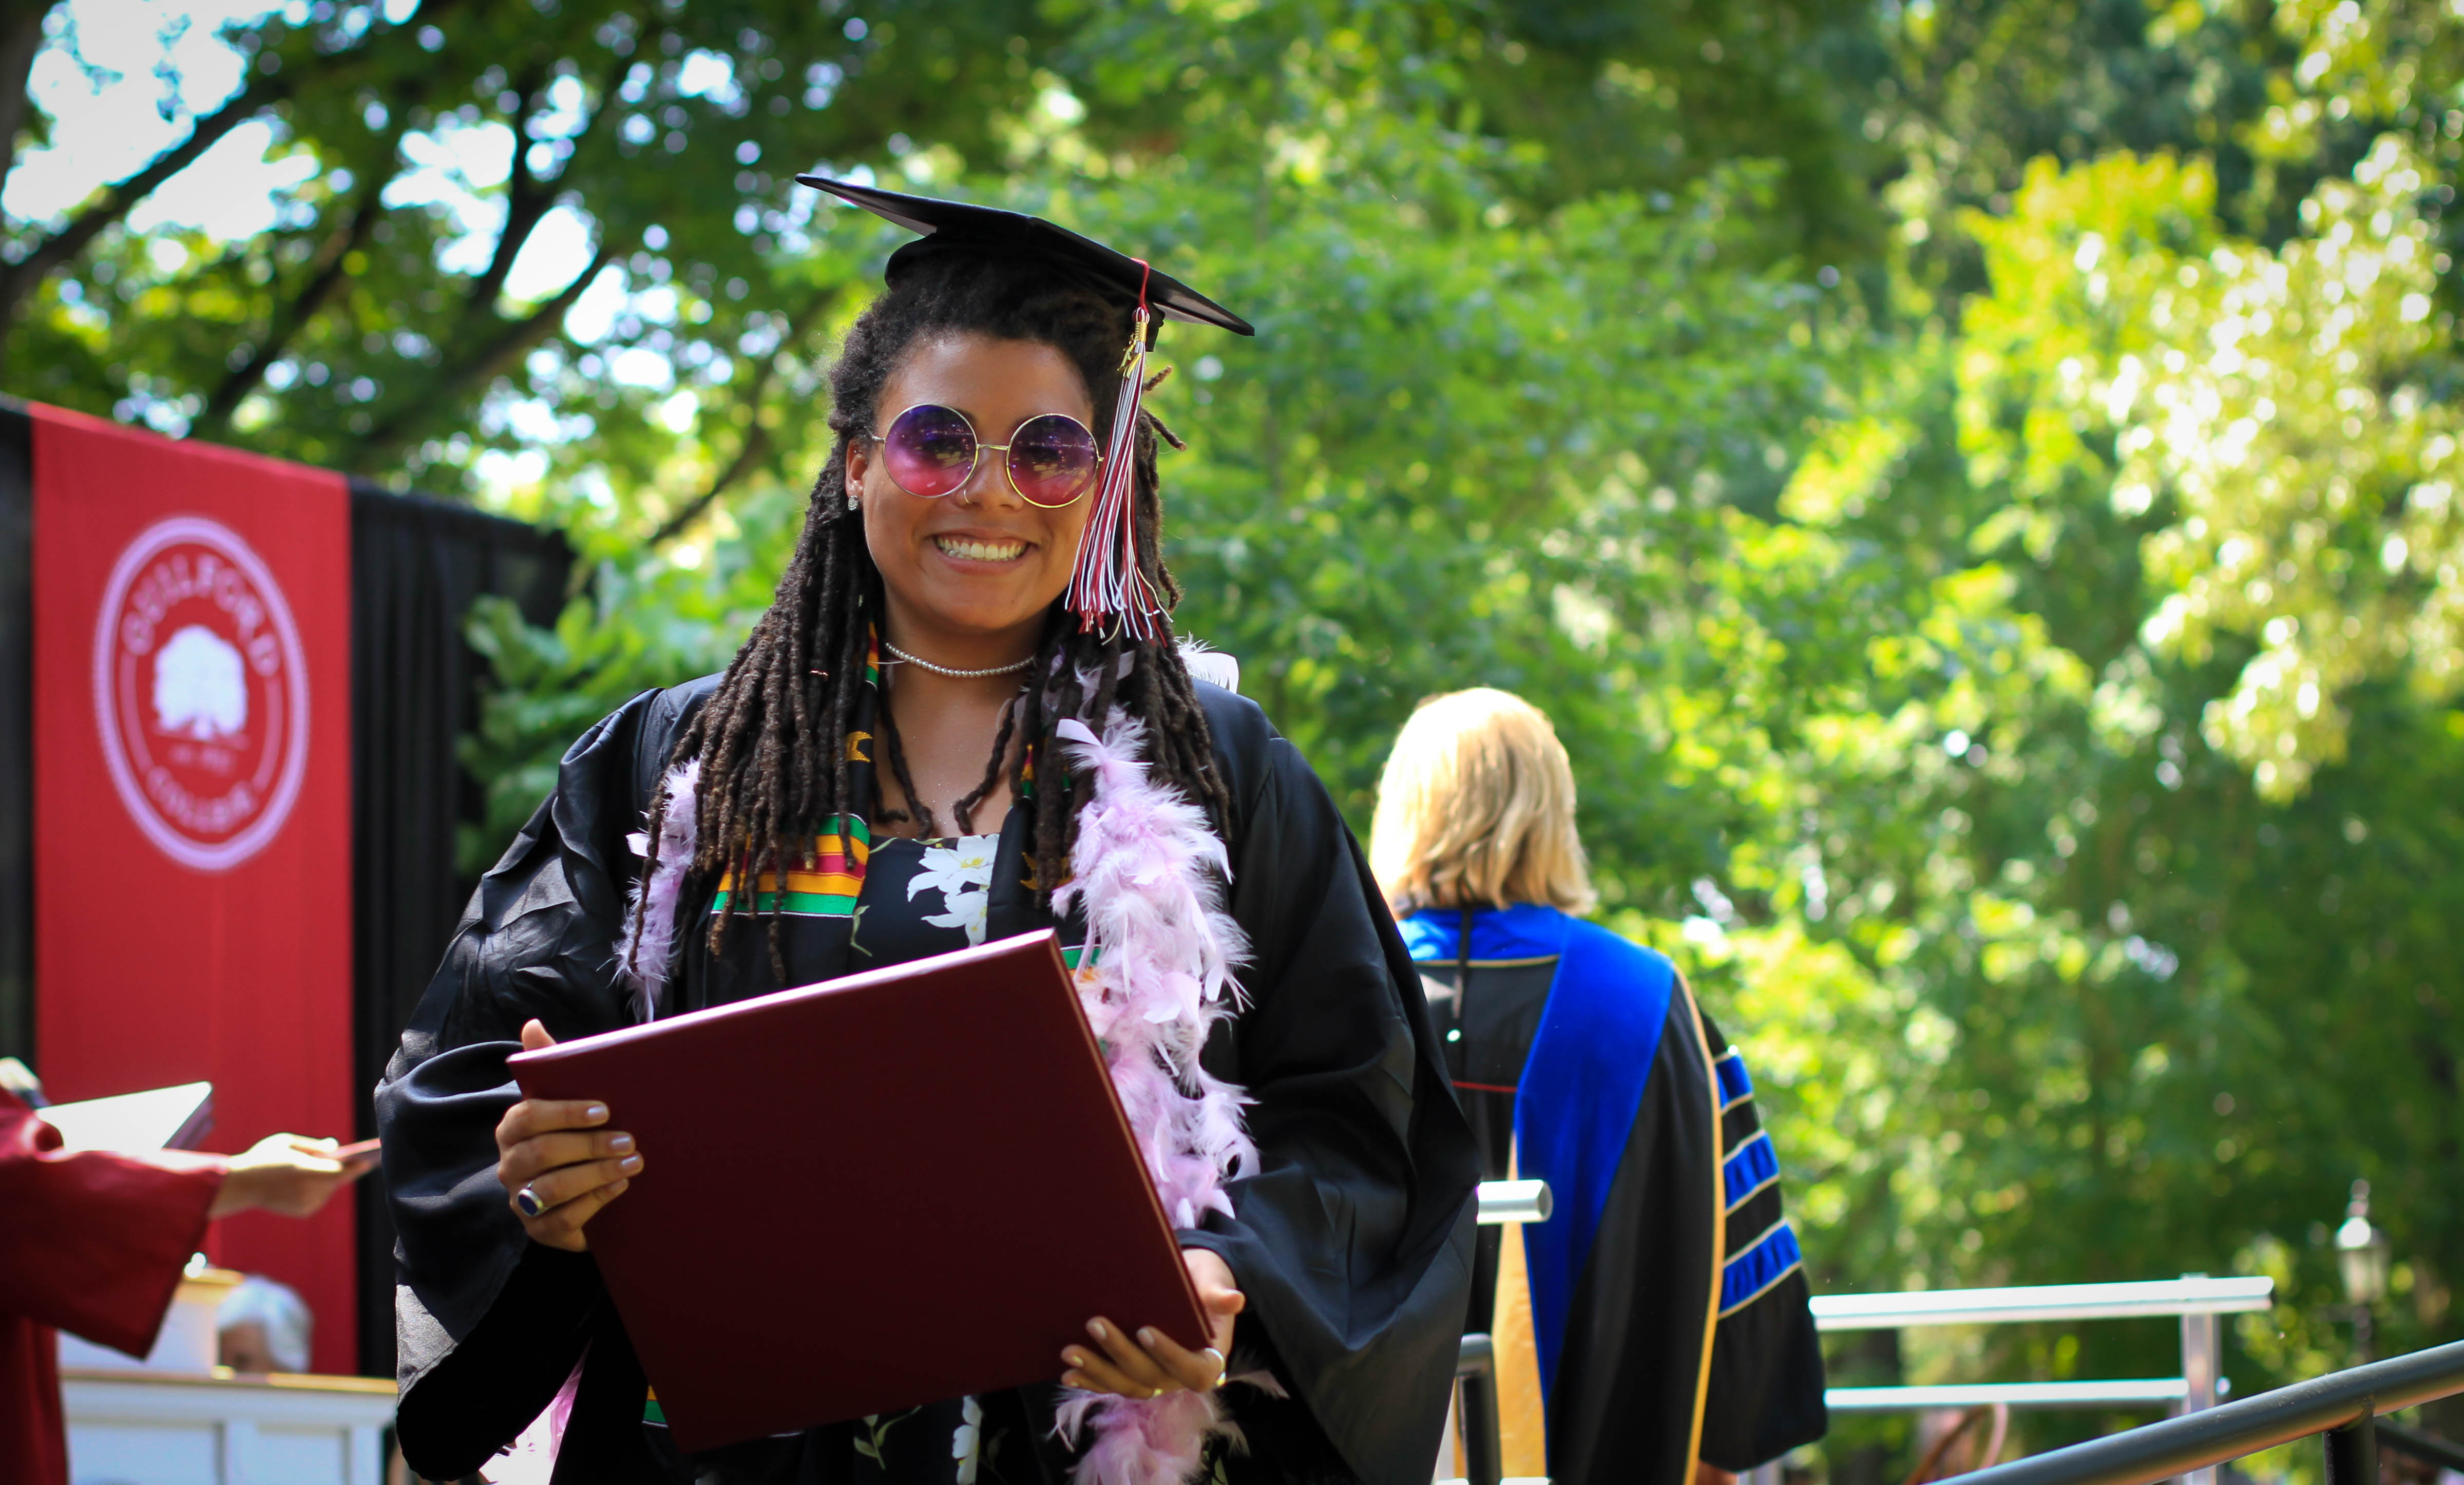 Grads are all smiles as they accept their diplomas.